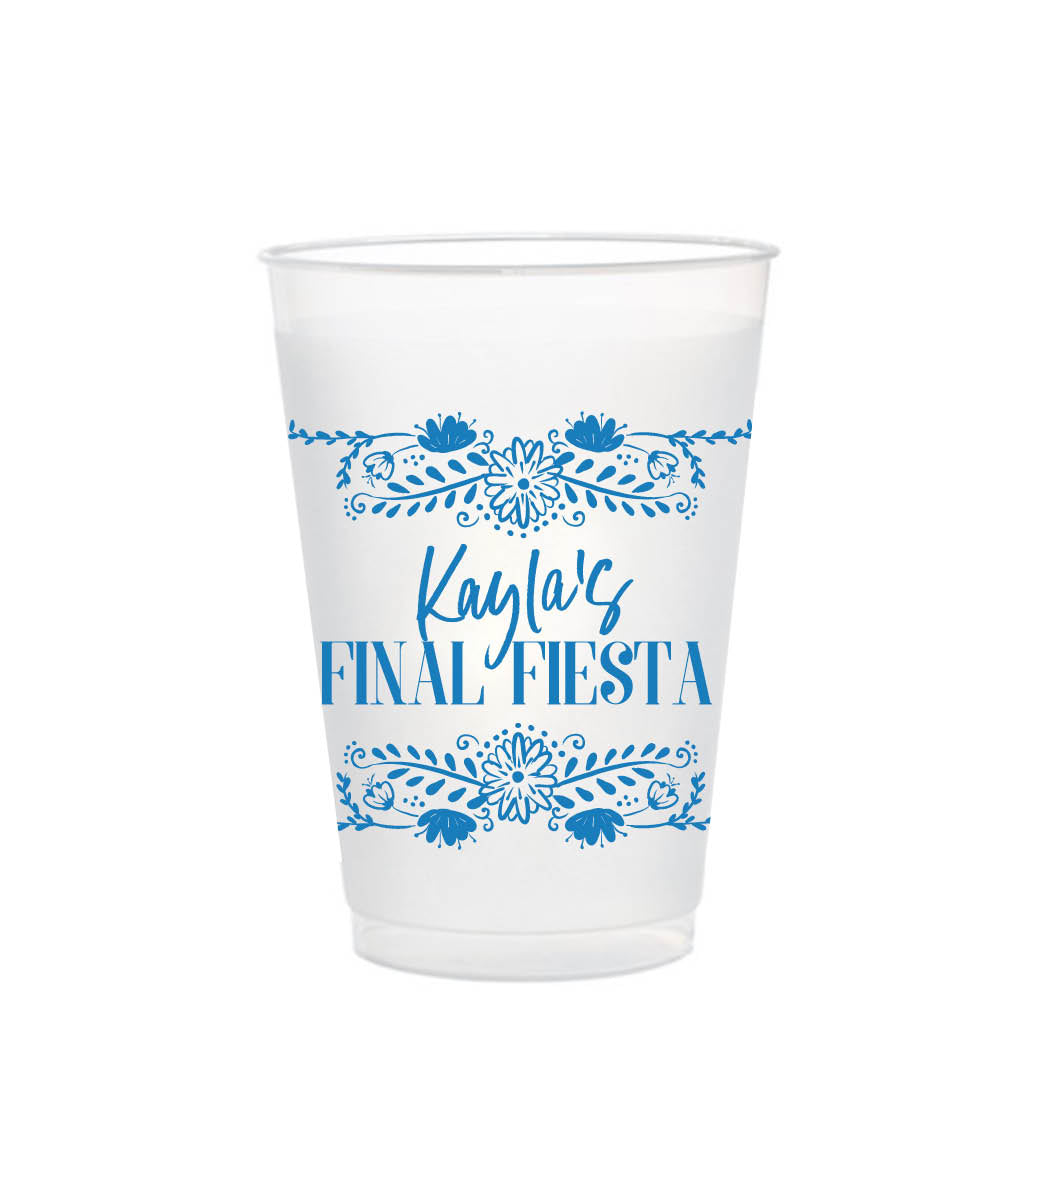 Final Fiesta | Shatterproof Cups